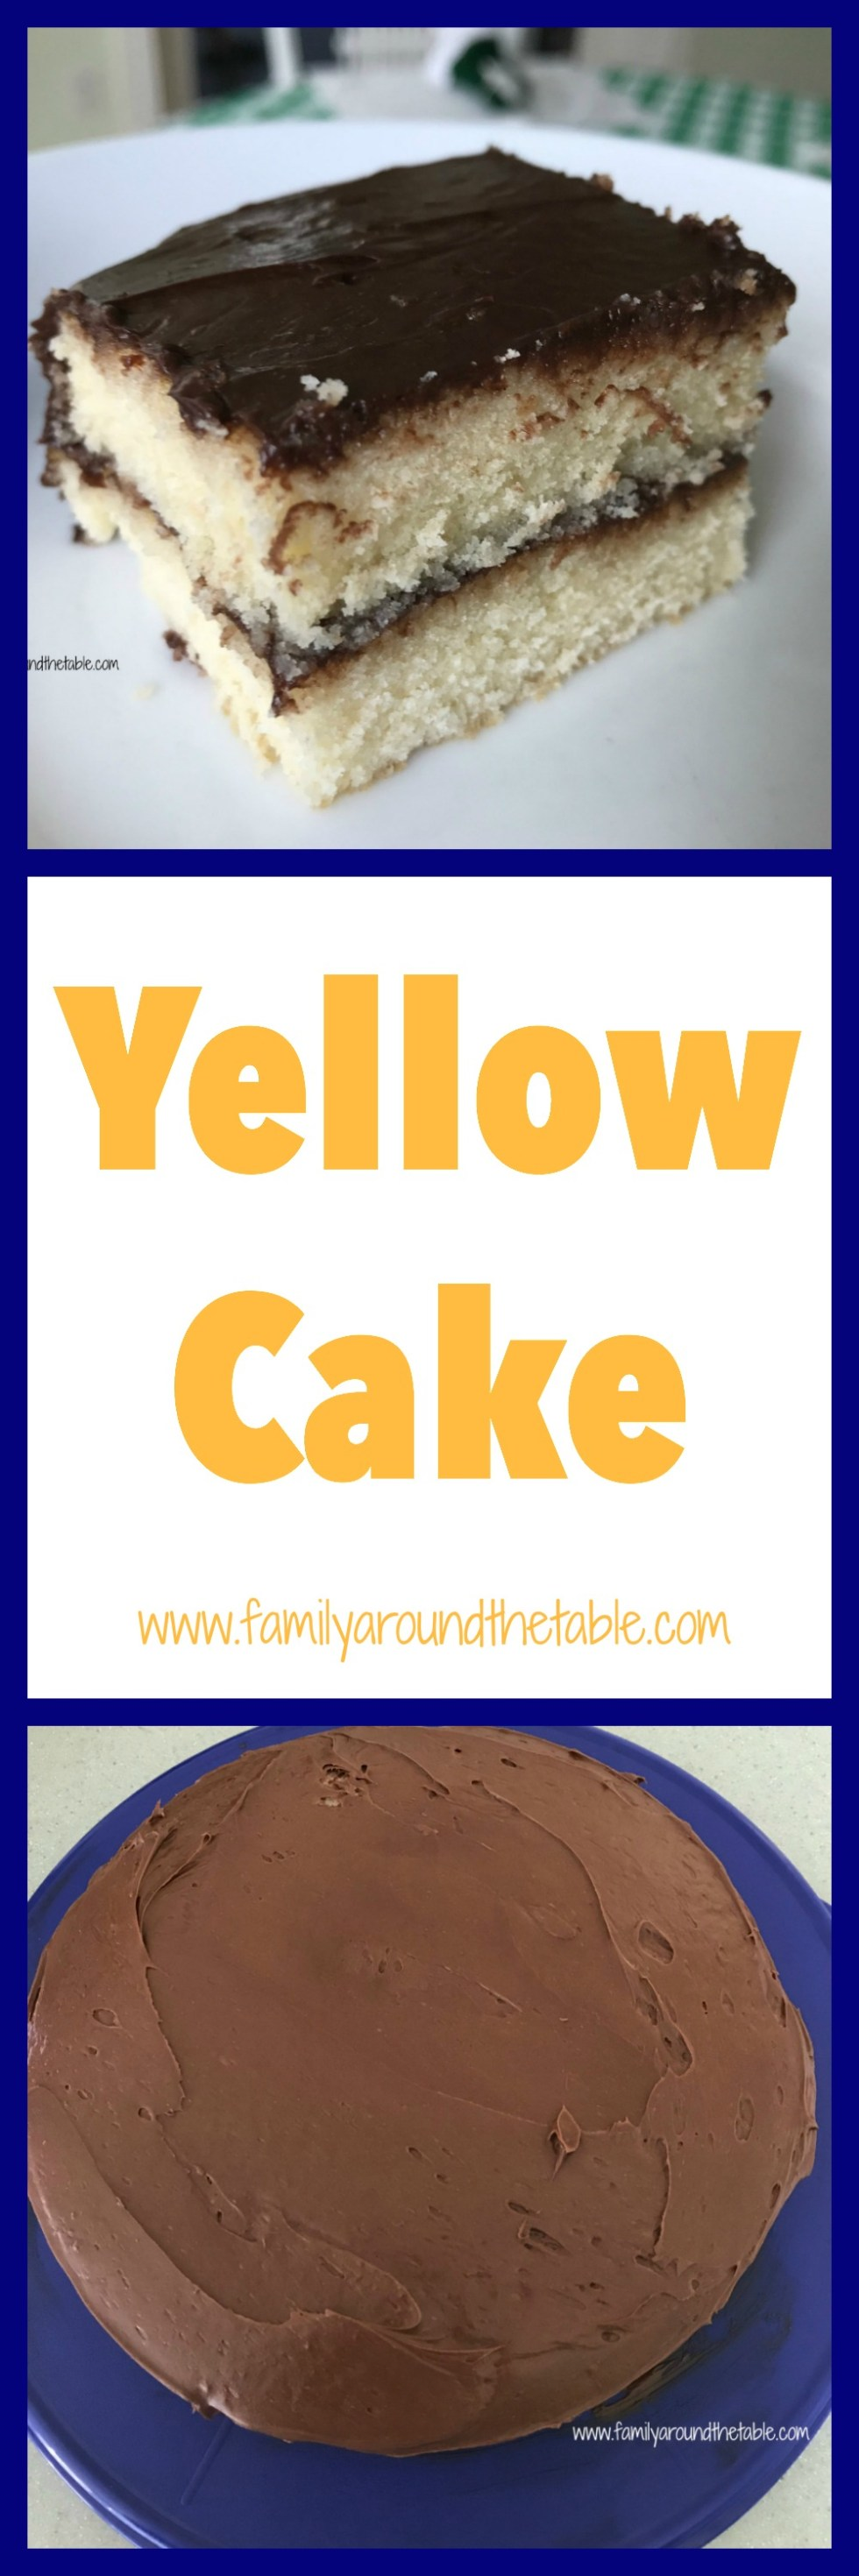 Top yellow cake what your favorite frosting for any special occasion.